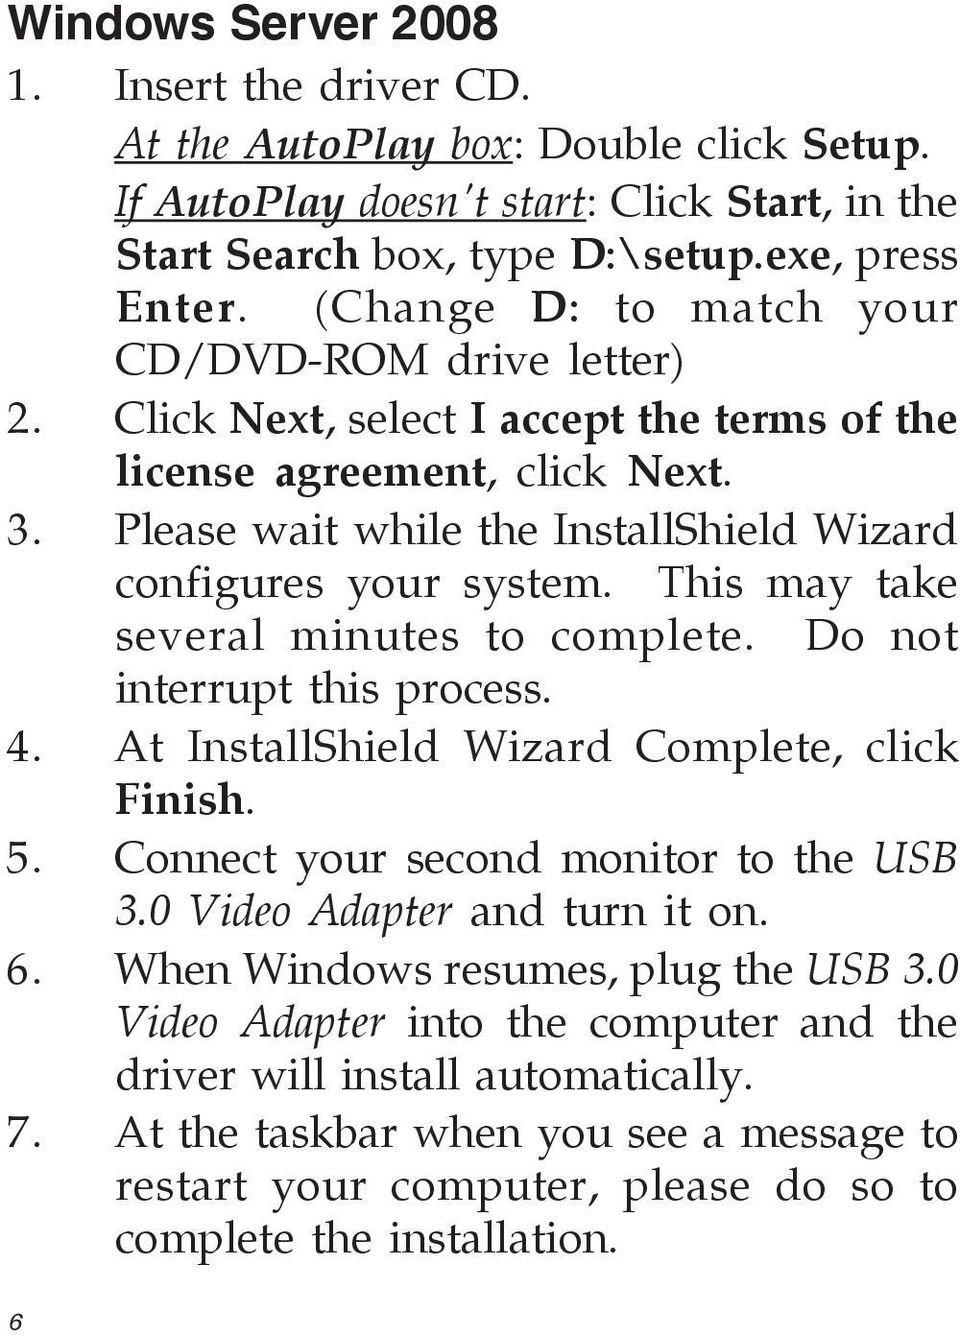 This may take several minutes to complete. Do not interrupt this process. 4. At InstallShield Wizard Complete, click Finish. 5. Connect your second monitor to the USB 3.0 Video Adapter and turn it on.